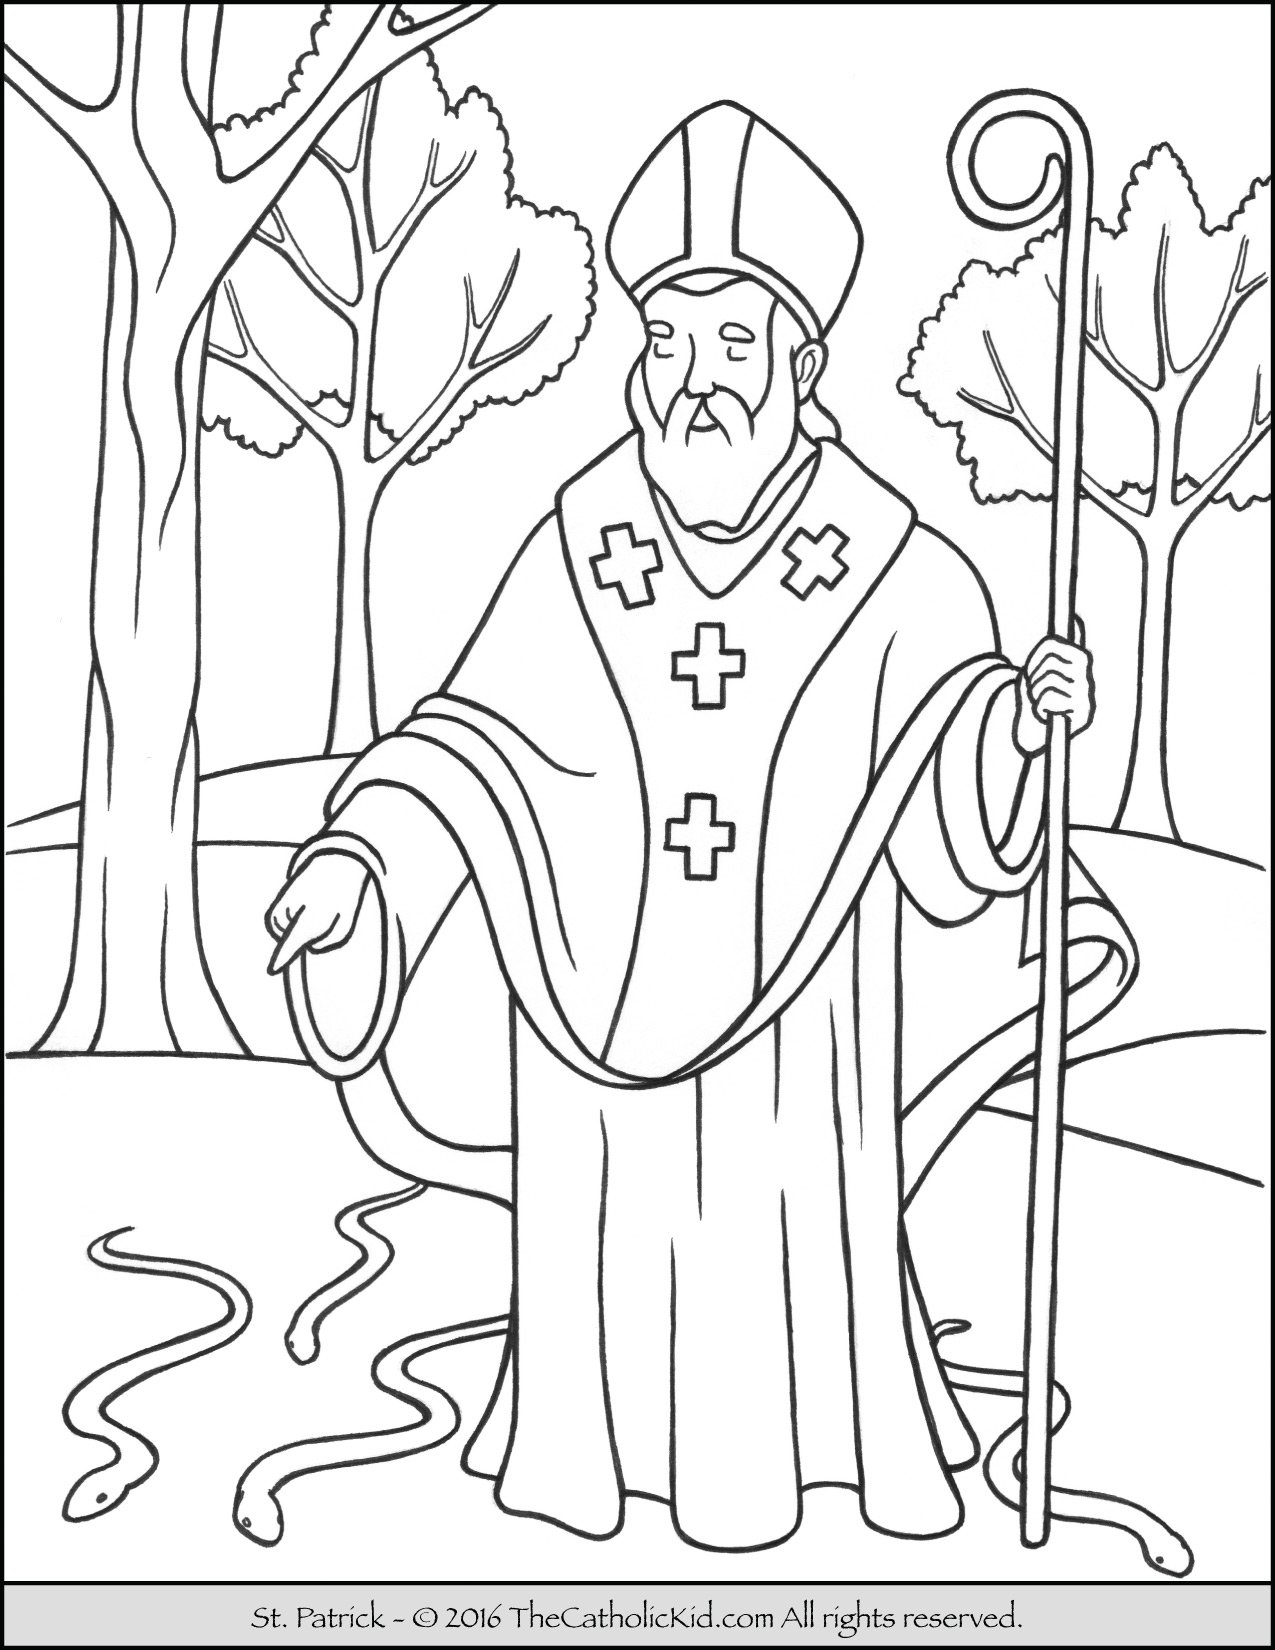 st patrick coloring pages Saint Patrick Coloring Page   The Catholic Kid st patrick coloring pages